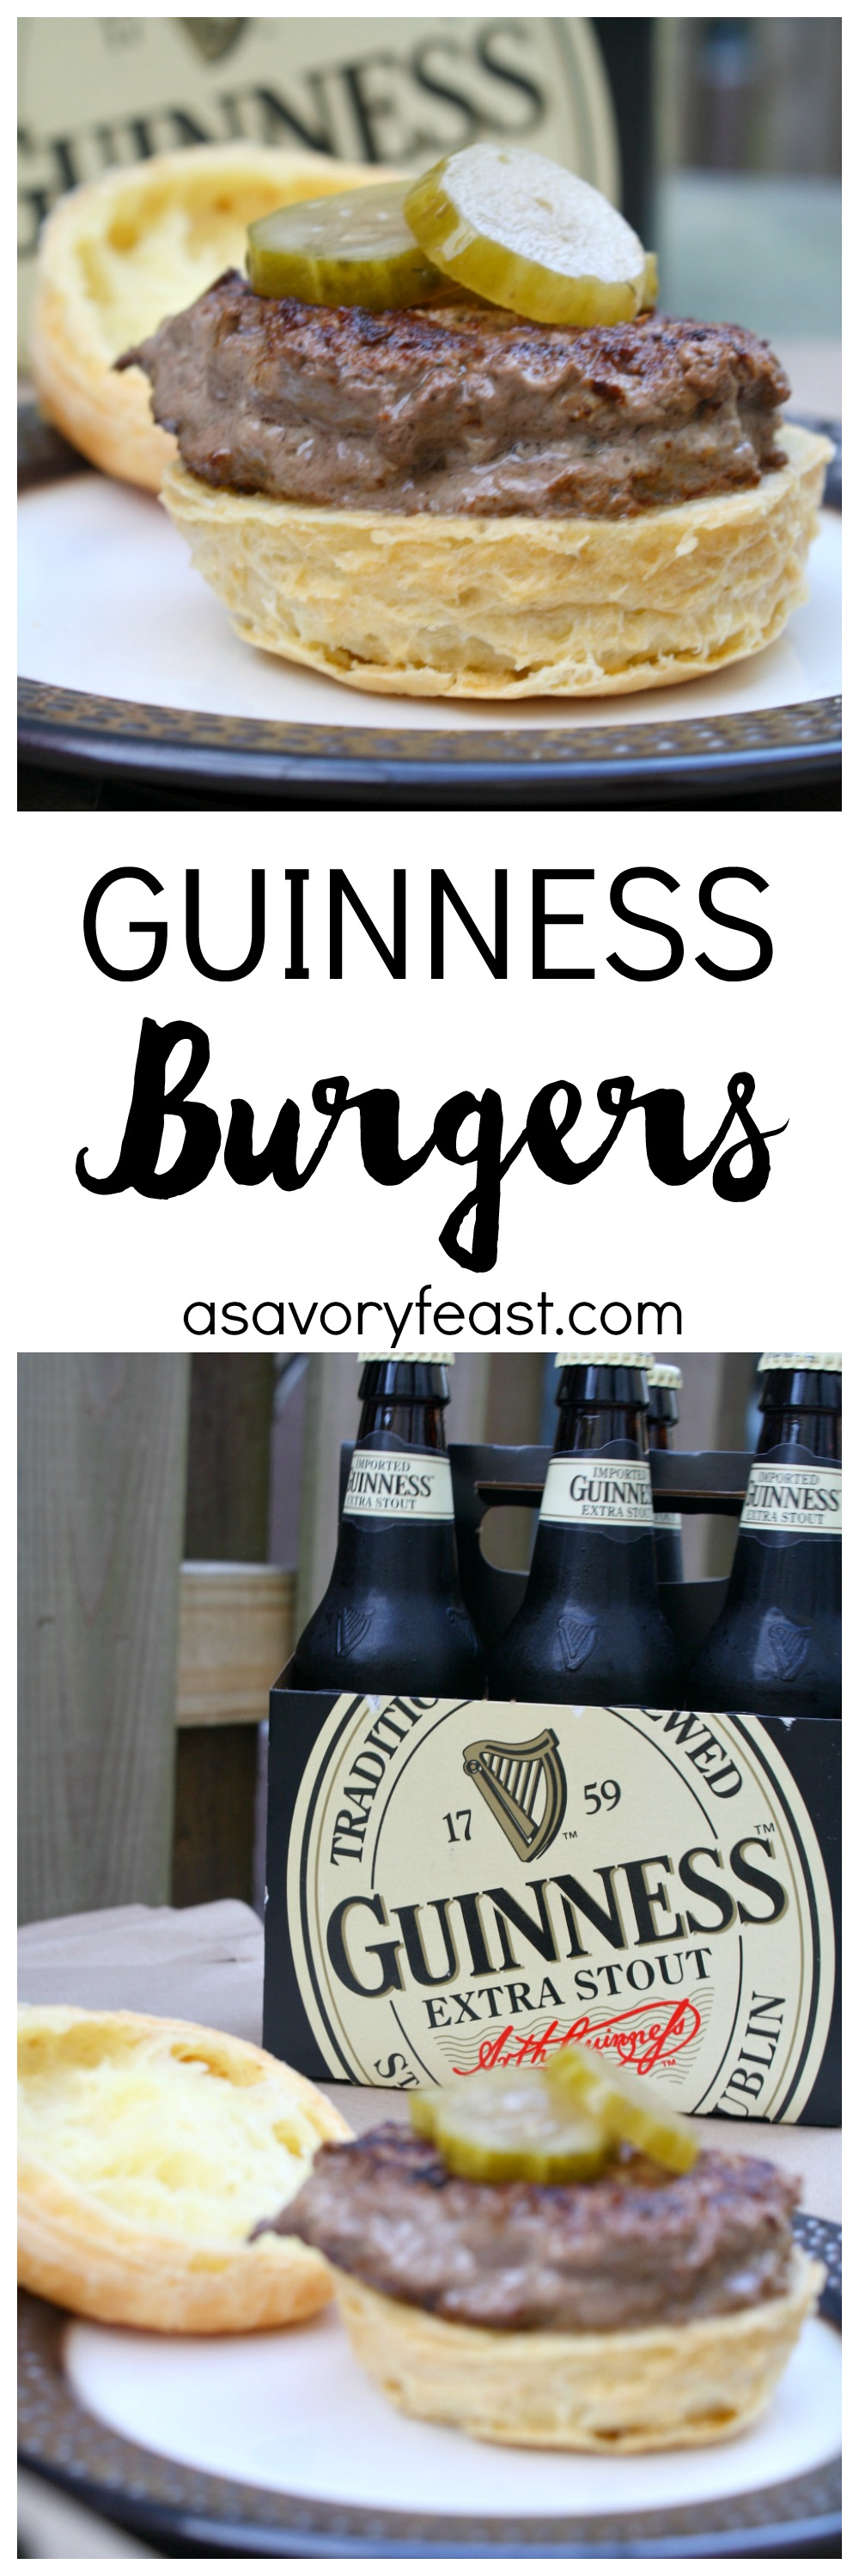 These flavorful and hearty Guinness Burgers are perfect for St. Patrick's Day! Start by marinating the beef in Guinness. Then fire up the grill and get ready to enjoy this delicious dinner!